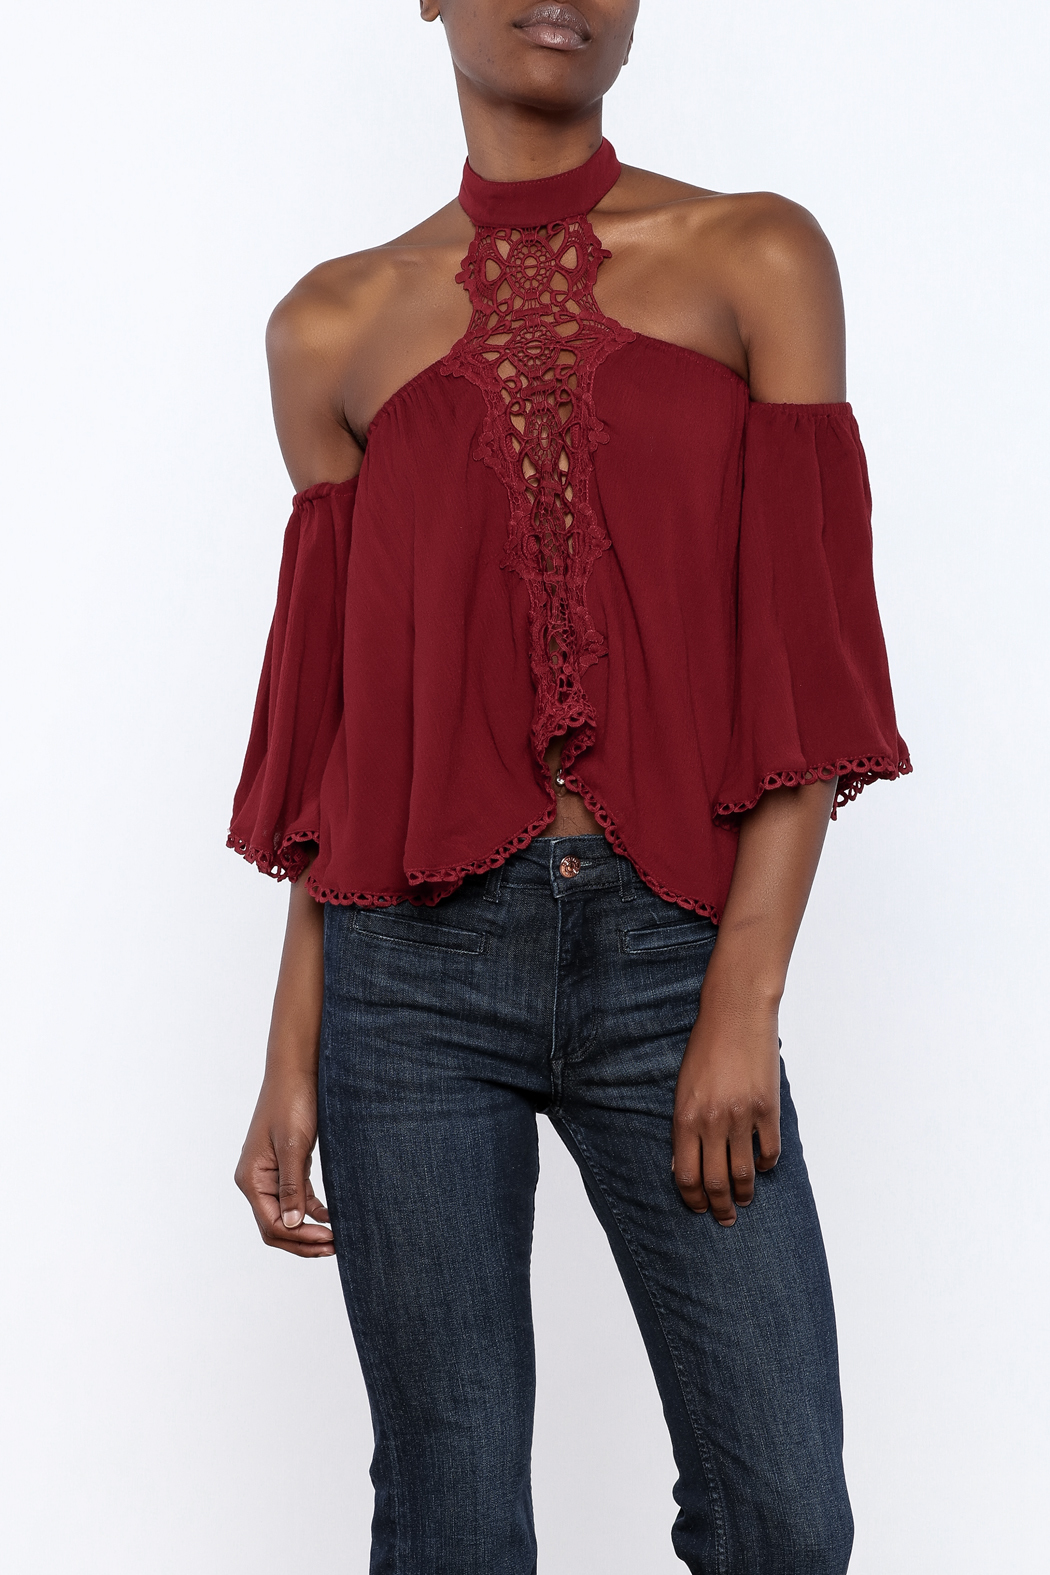 essue Goddess Lace Choker Top - Front Cropped Image